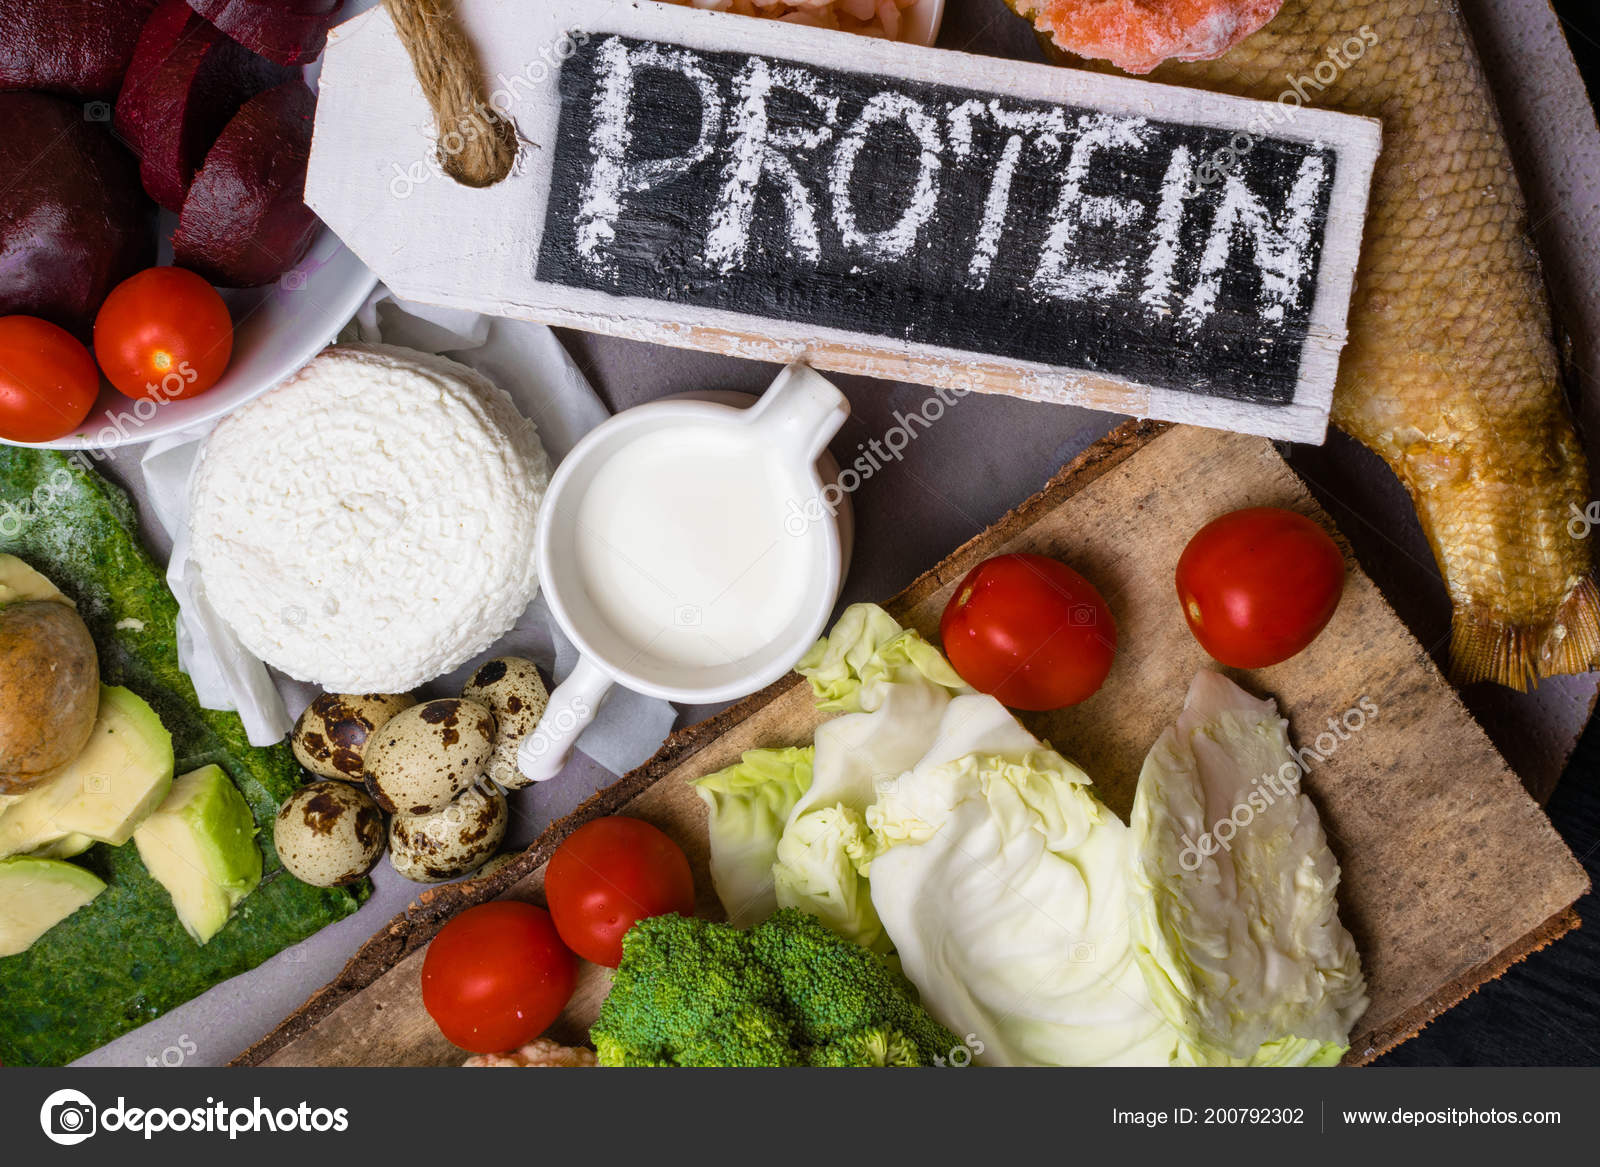 High Protein Food Fish Meat Poultry Nuts Eggs Healthy Eating